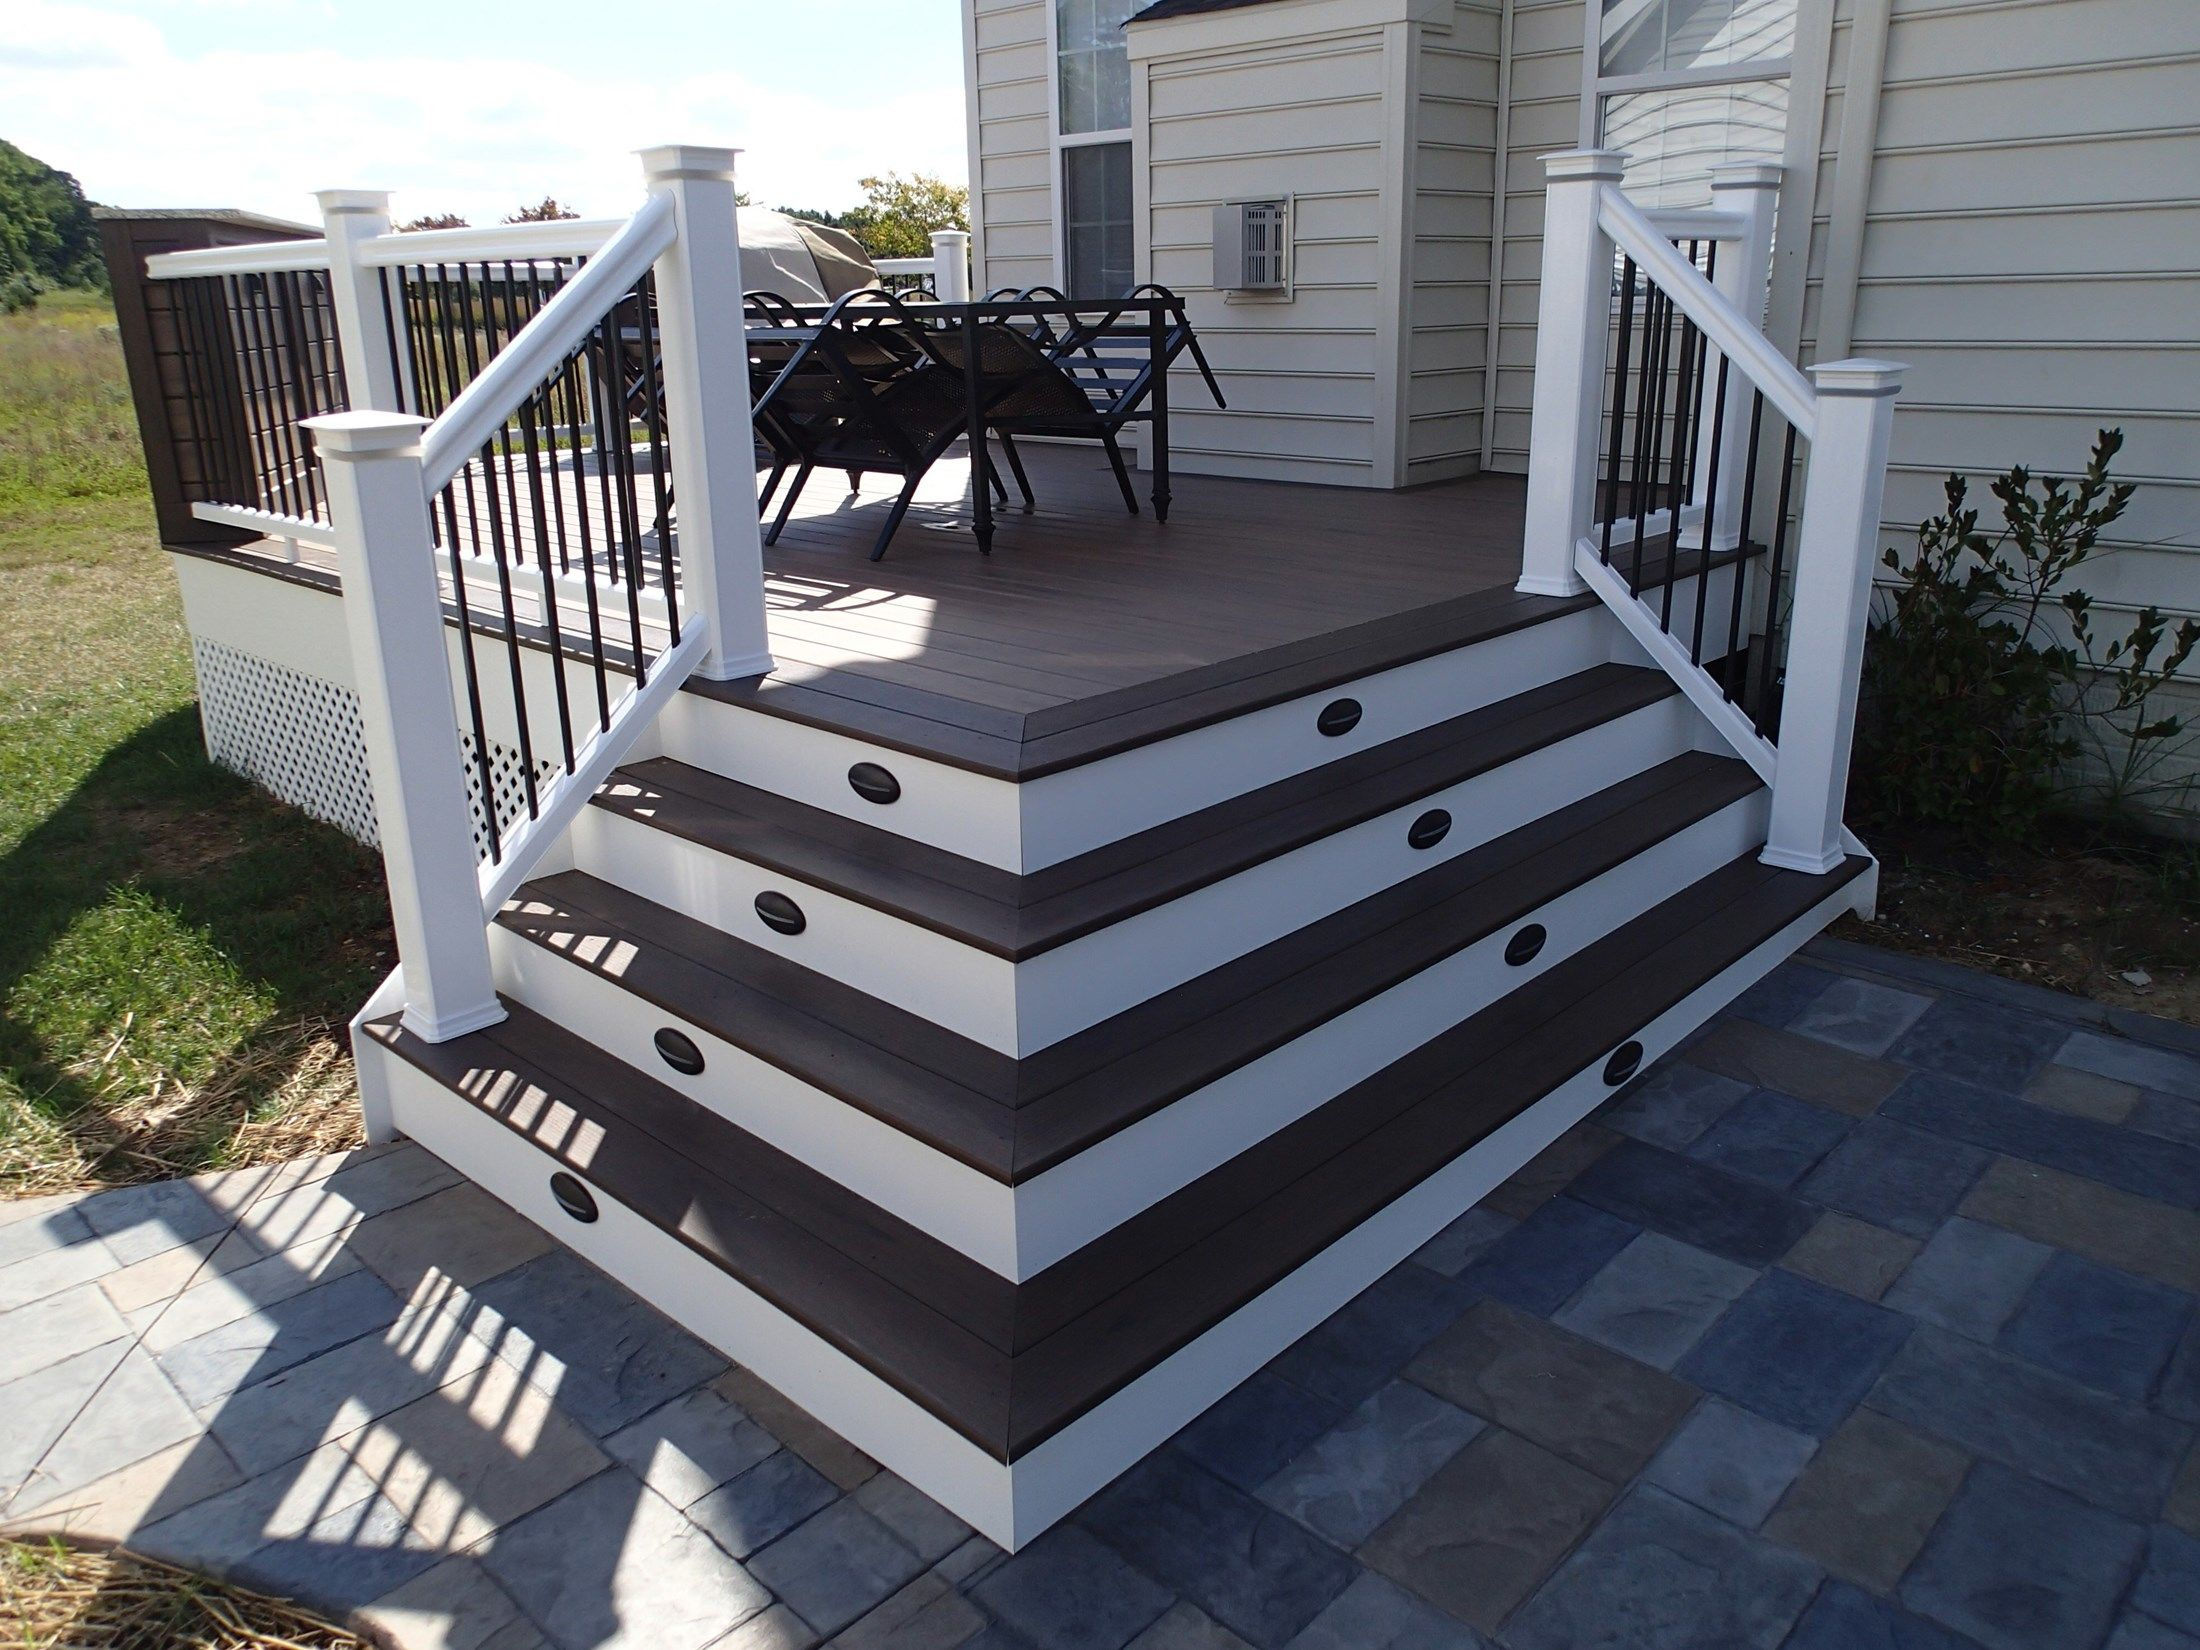 Composite decks with pvc vinyl railing picture 6435 - Vinyl railing reviews ...